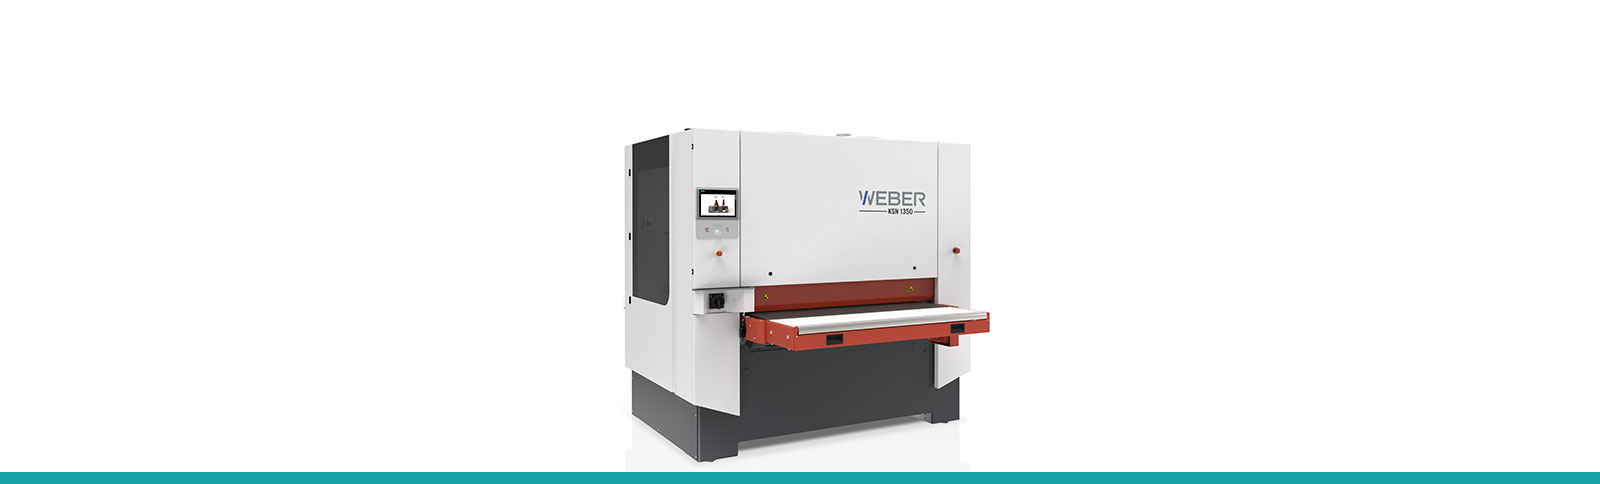 Martin Woodworking Machines High Quality Machines For Trade And